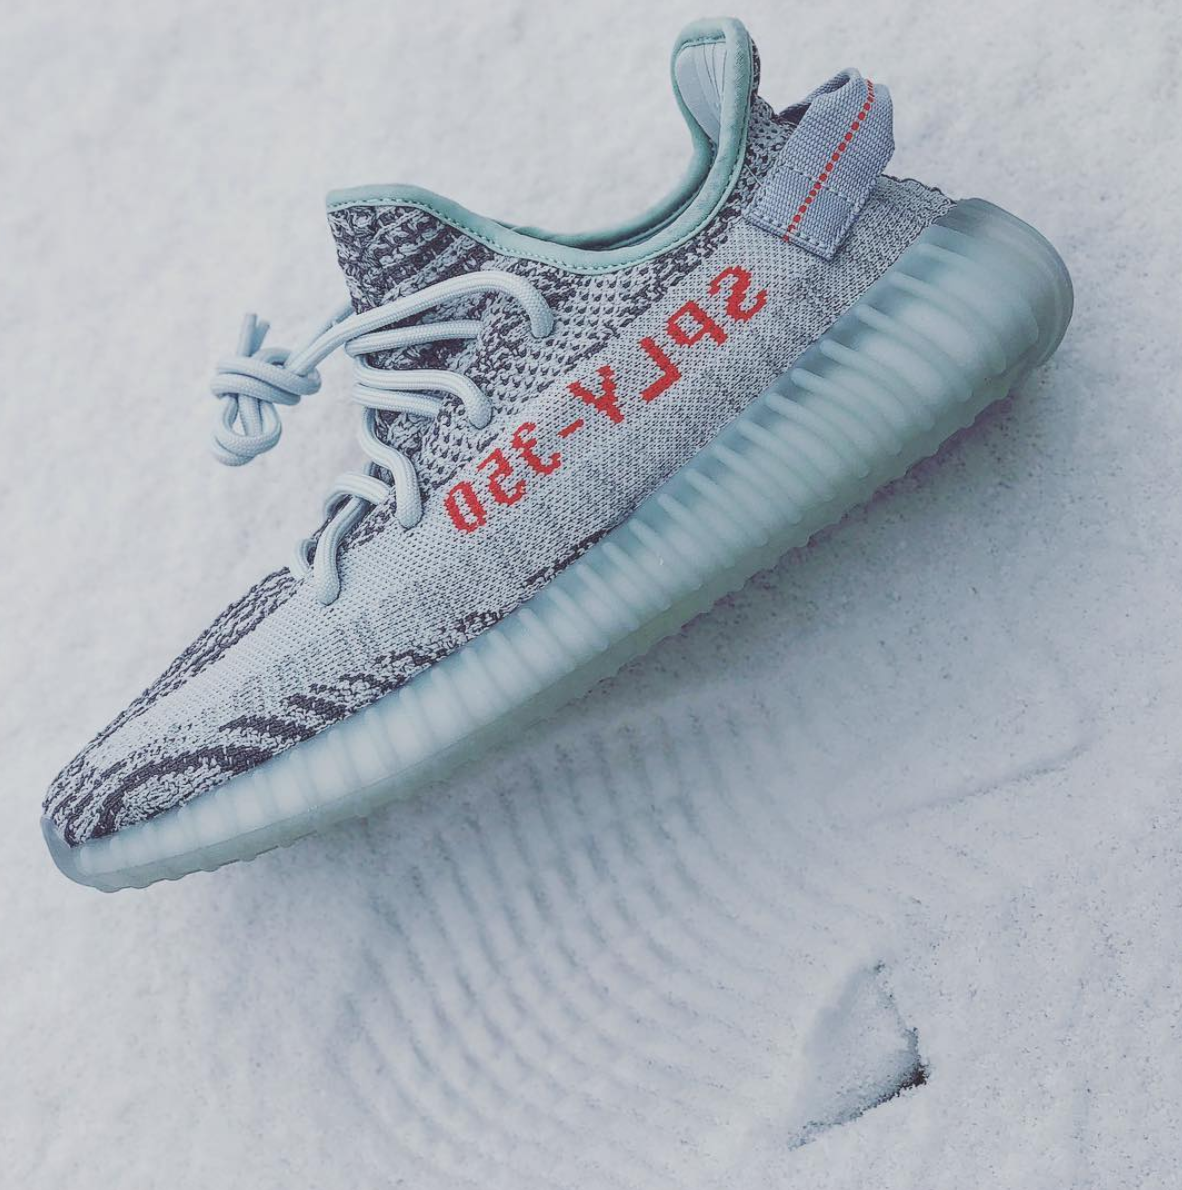 d945d186cb3 Watch out for fake Adidas Yeezy Boost 350 v2 Blue Tints, get a 39 ...